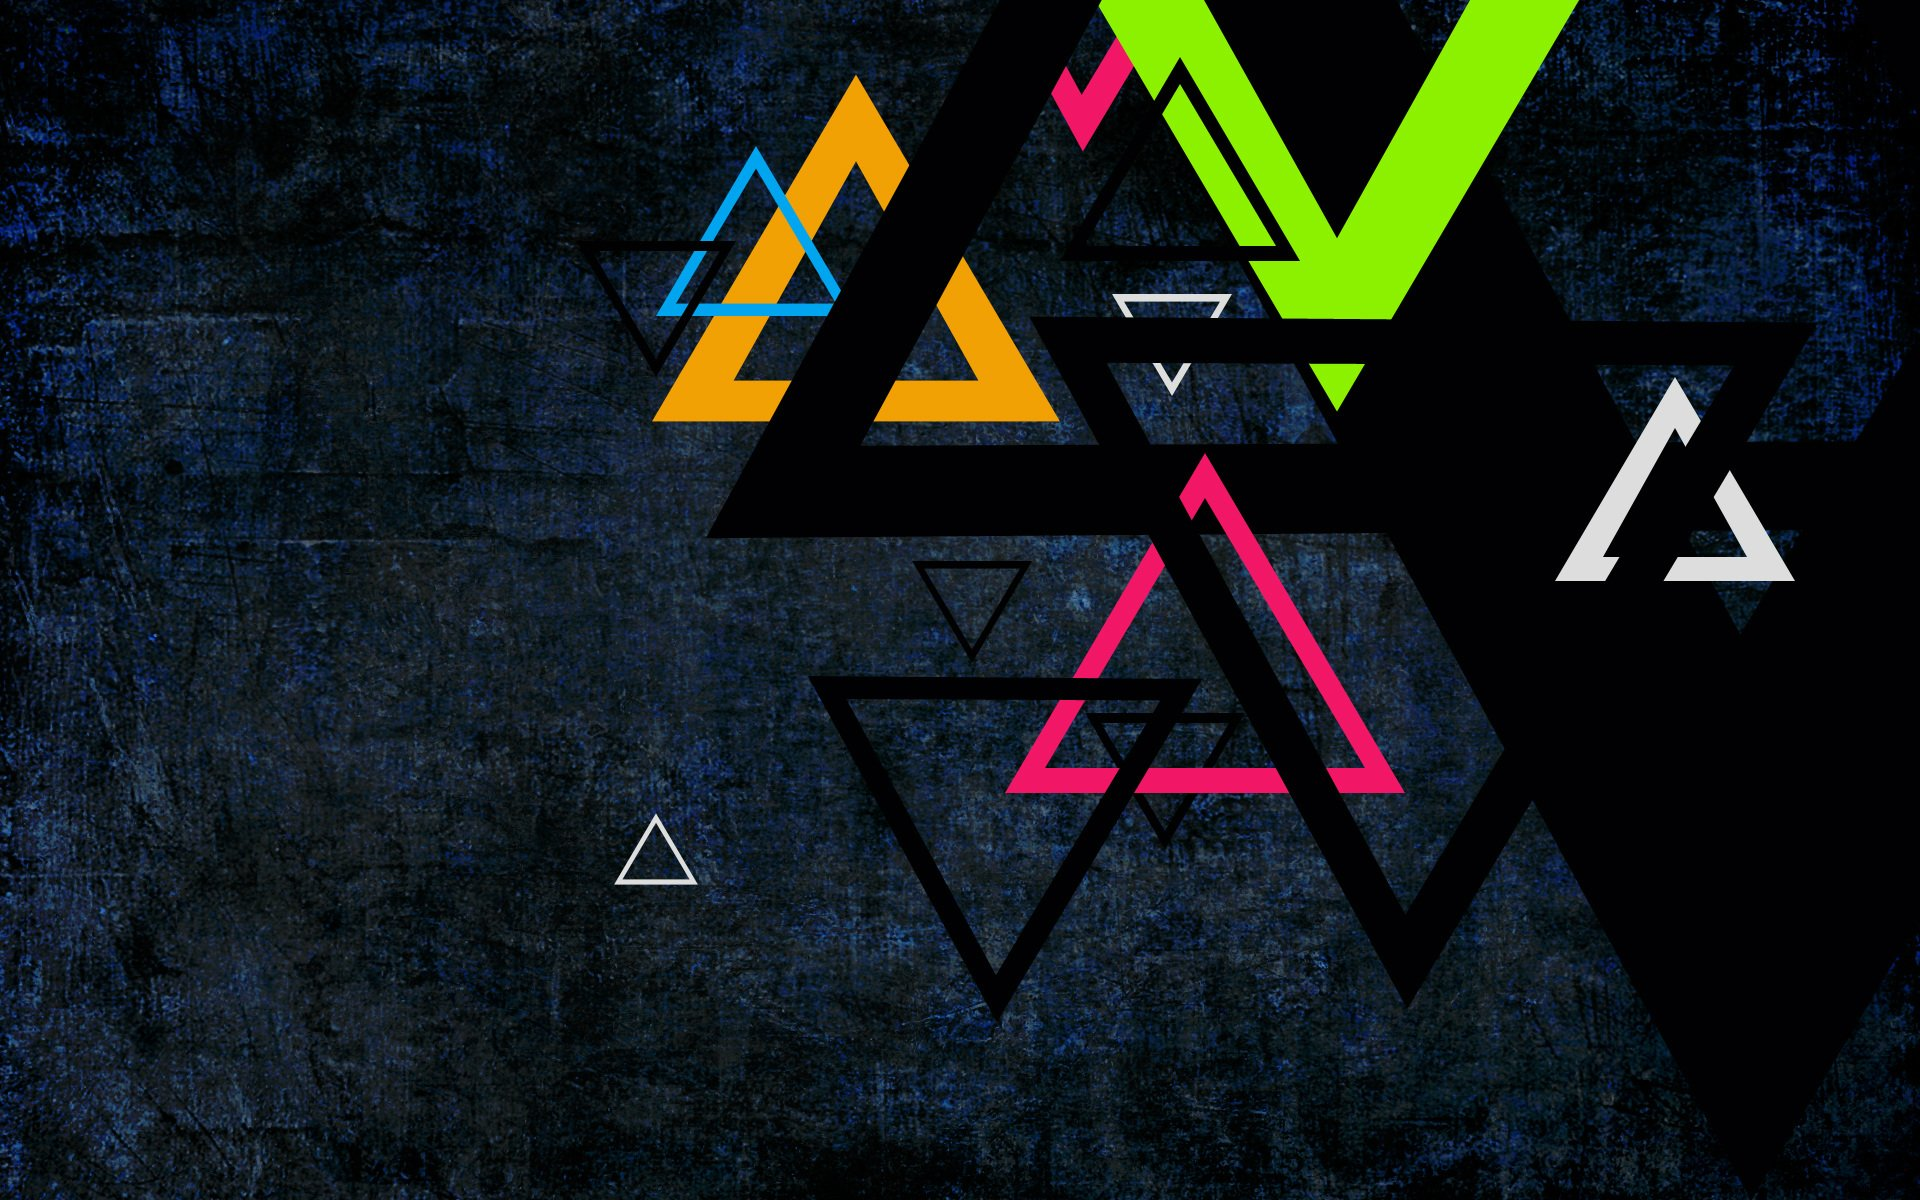 wallpaper_29_the_triangles_by_zpecter